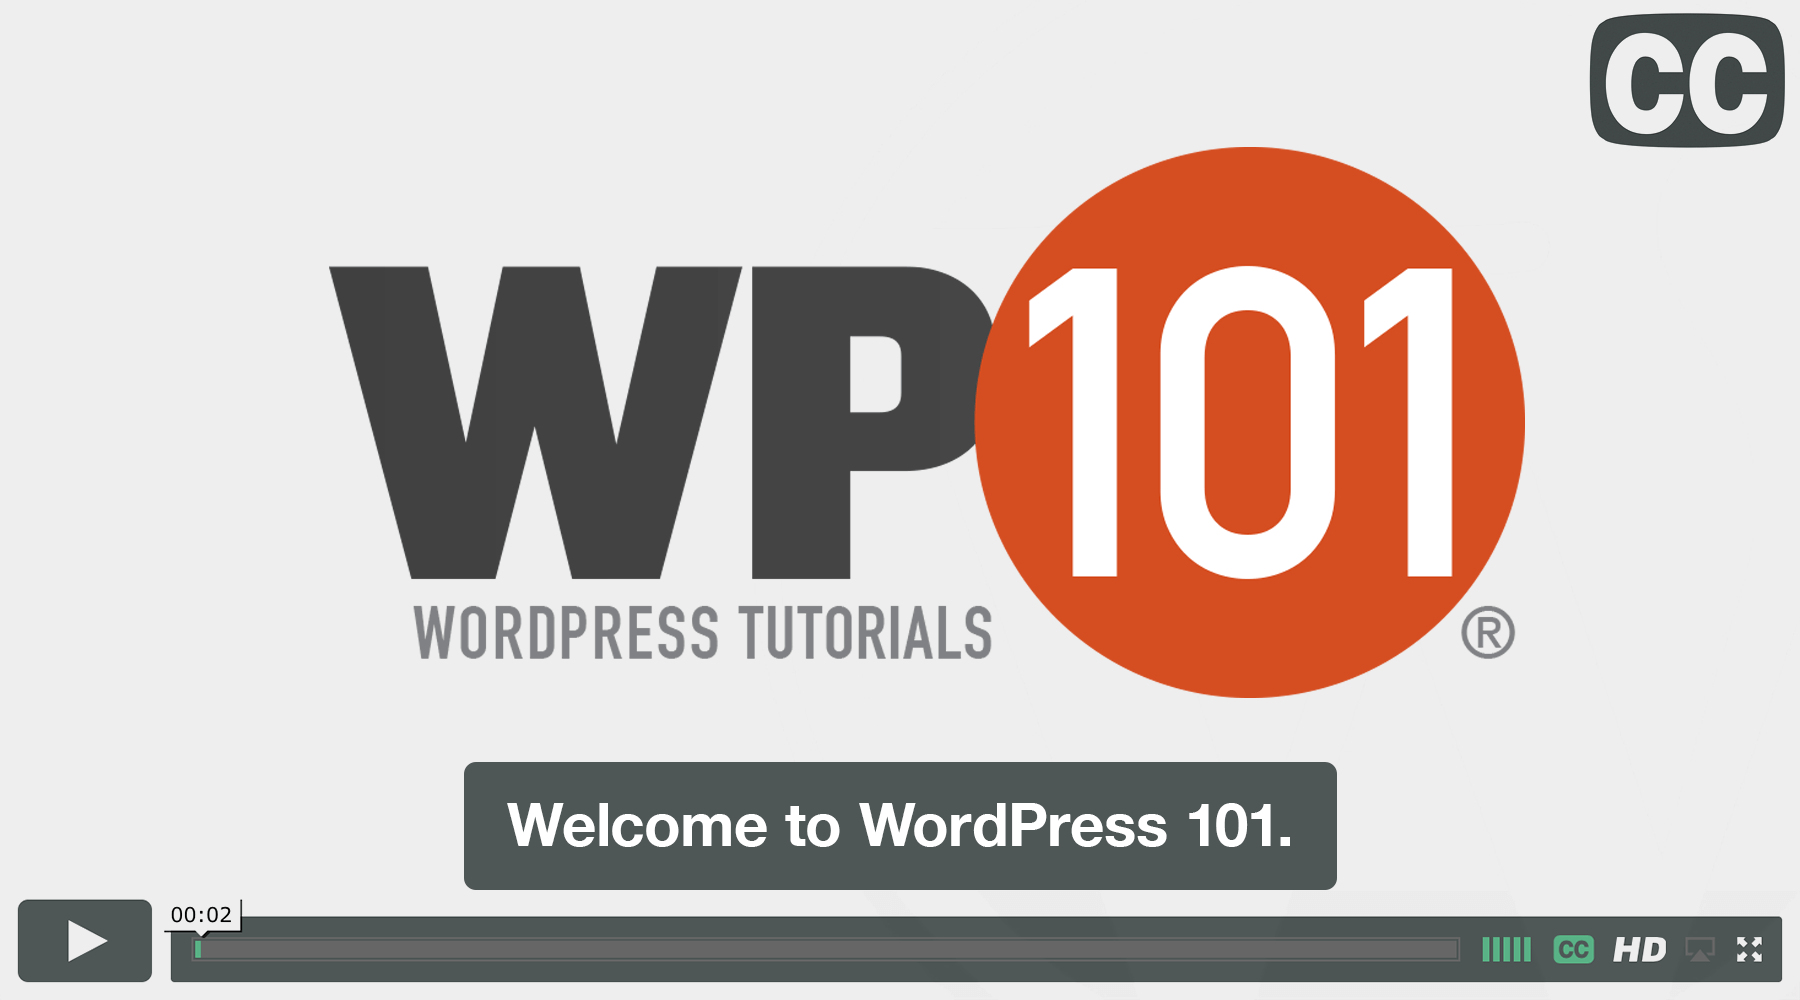 Closed Captioned WordPress Video Tutorials from WP101.com